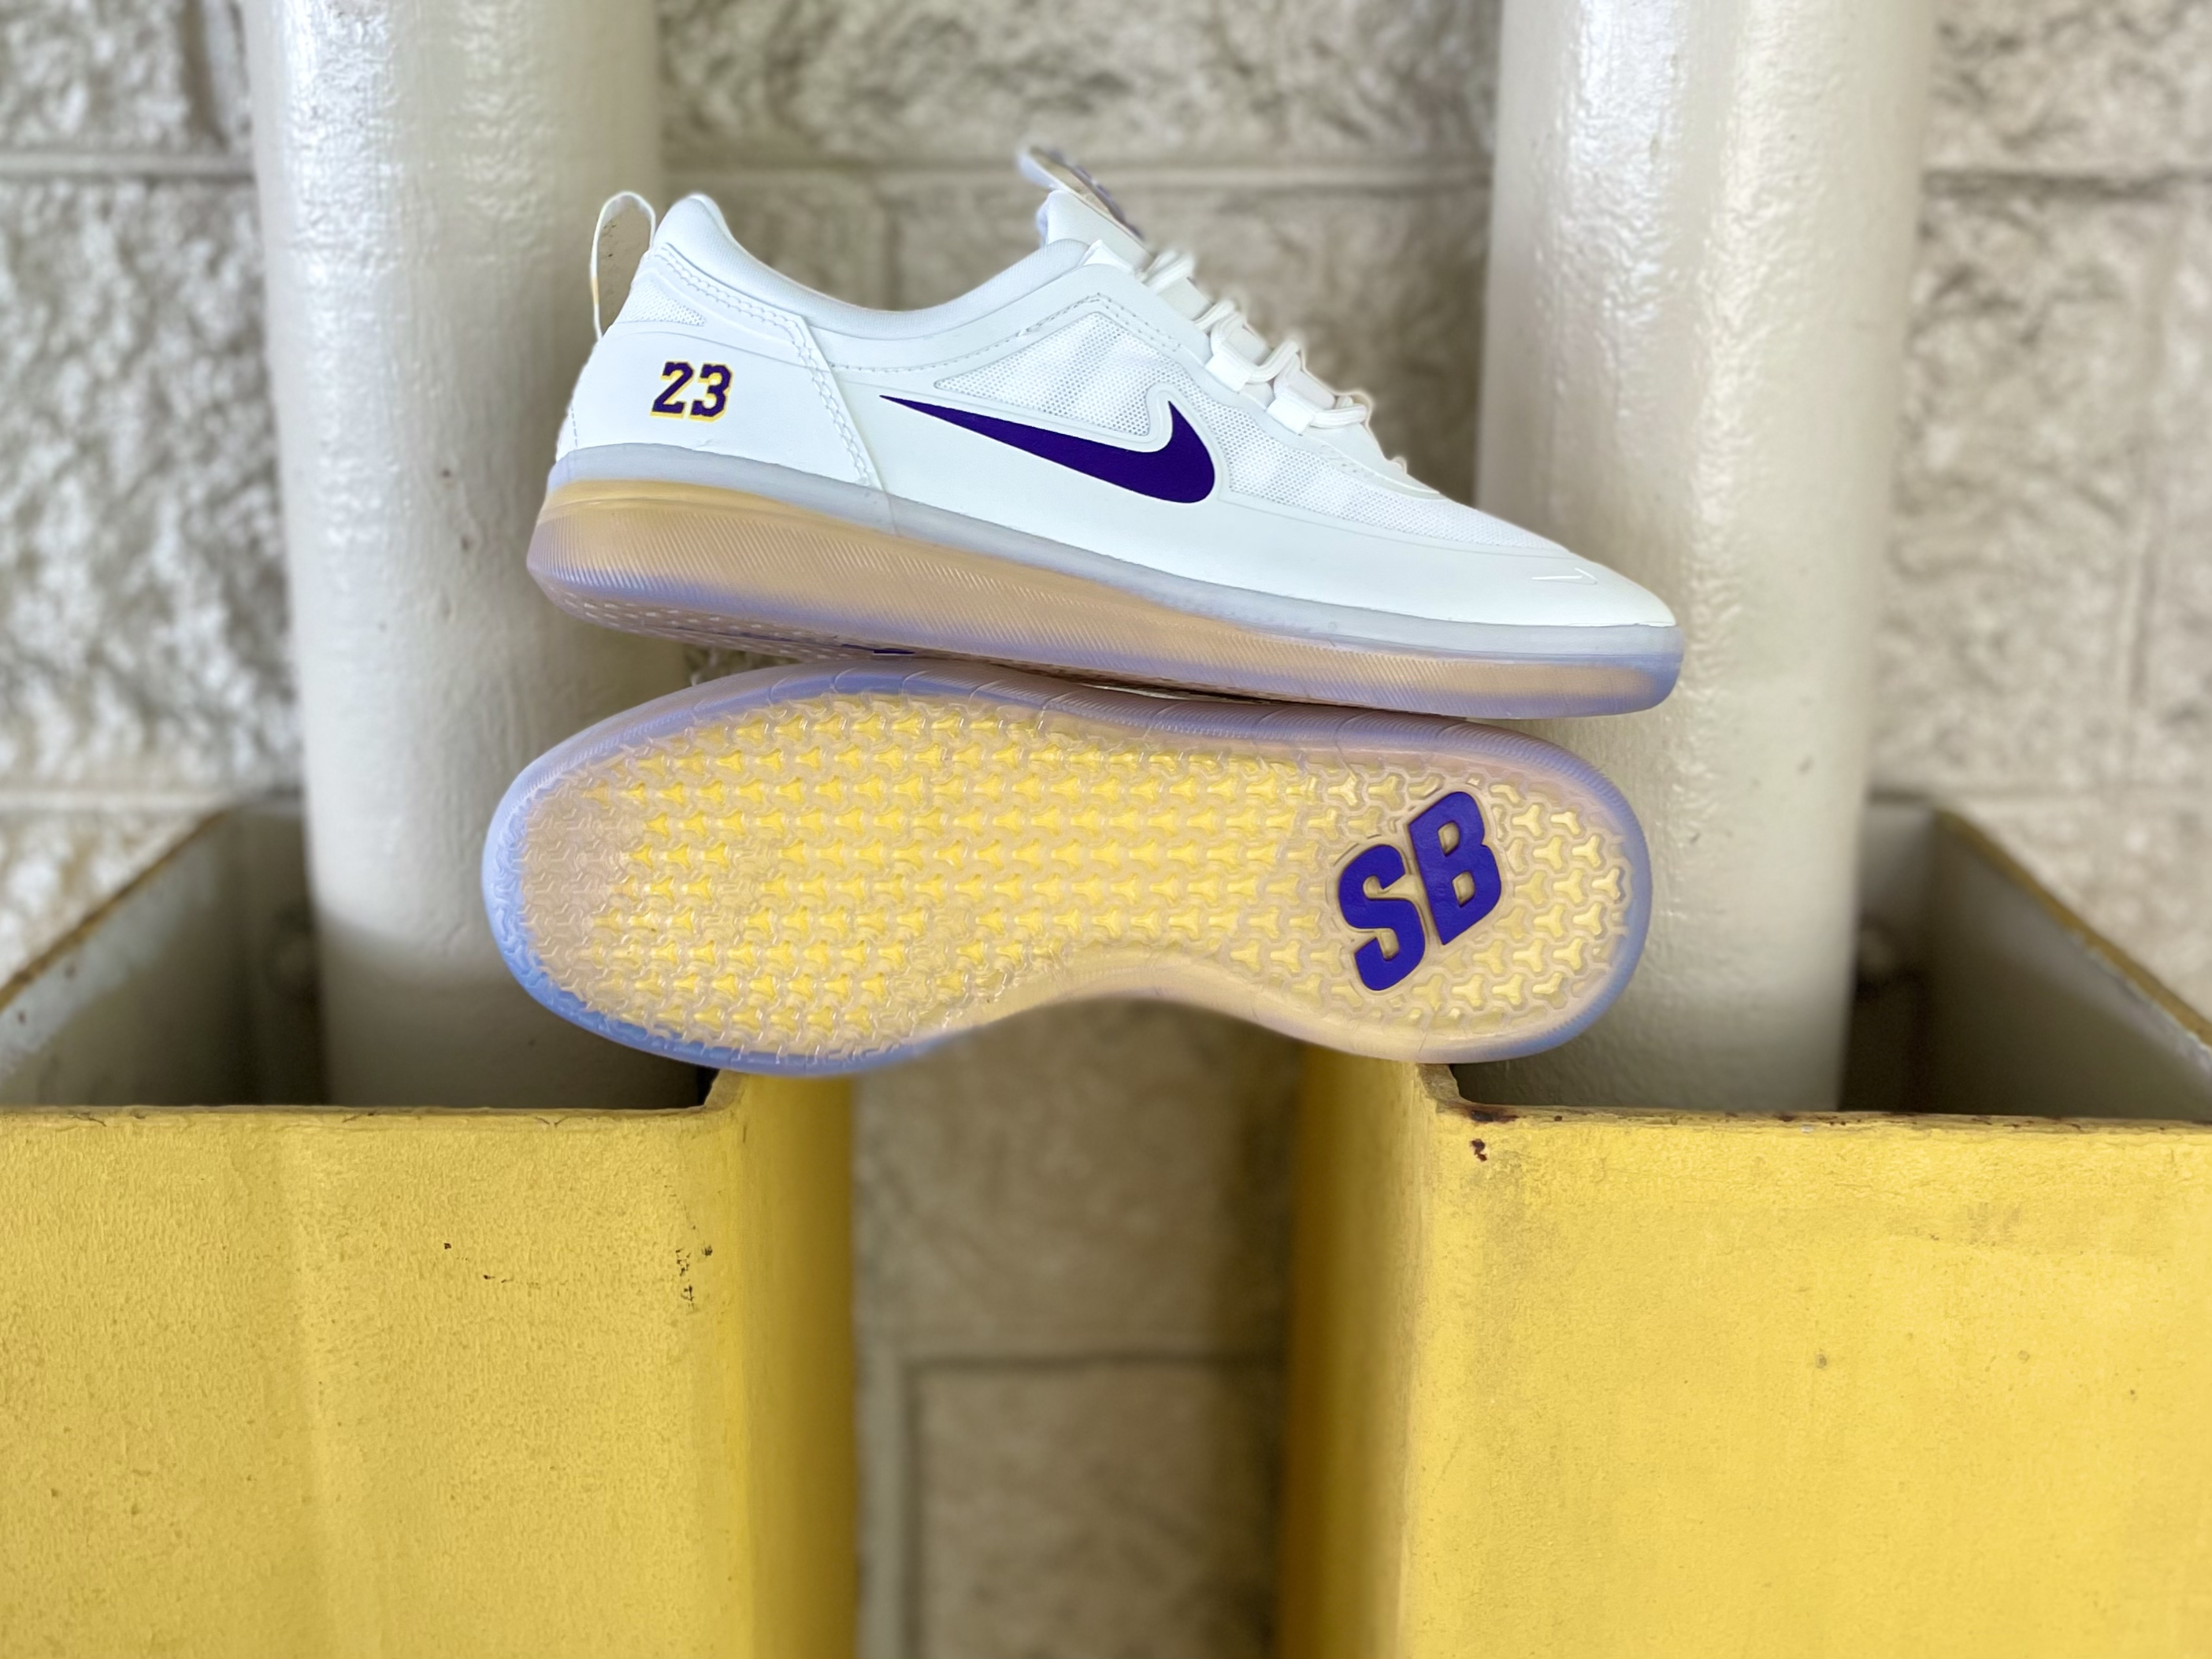 Nike SB Nyjah Free II x Lakers now available in-store